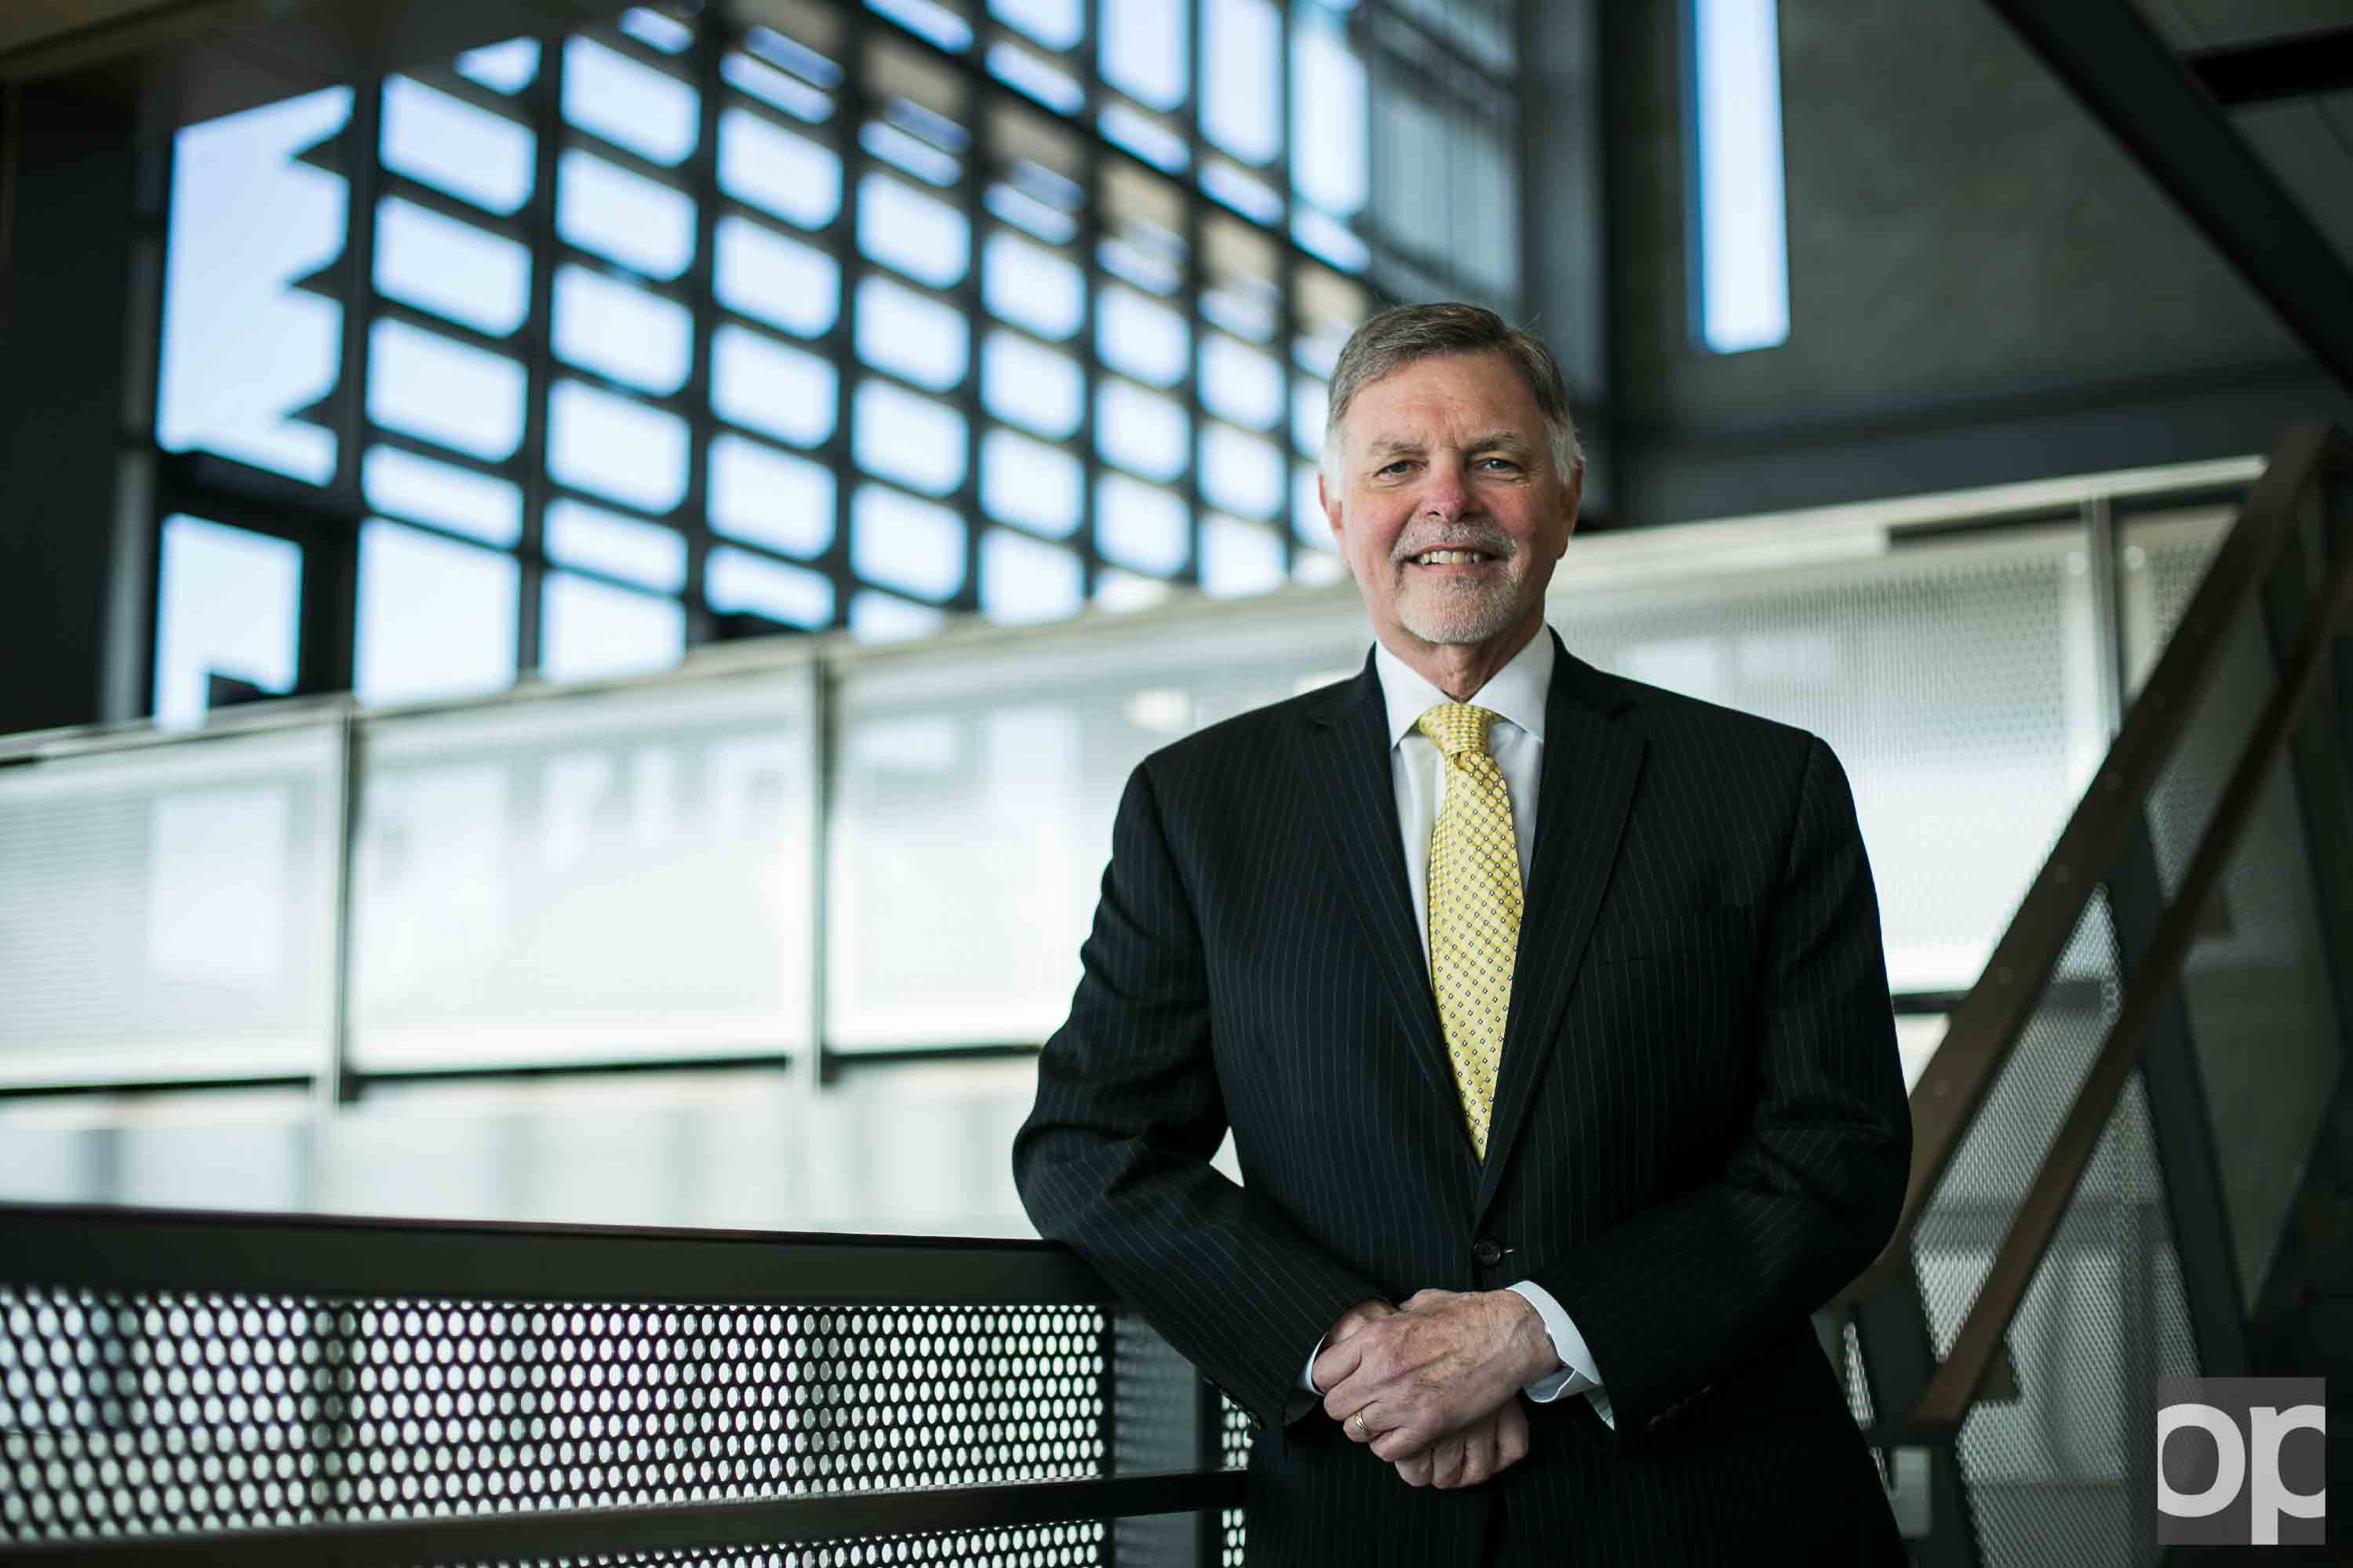 Current Oakland University President George Hynd will serve until Aug. 15, 2017, when his contract expires. The Board of Trustees will begin a national search for the next president.